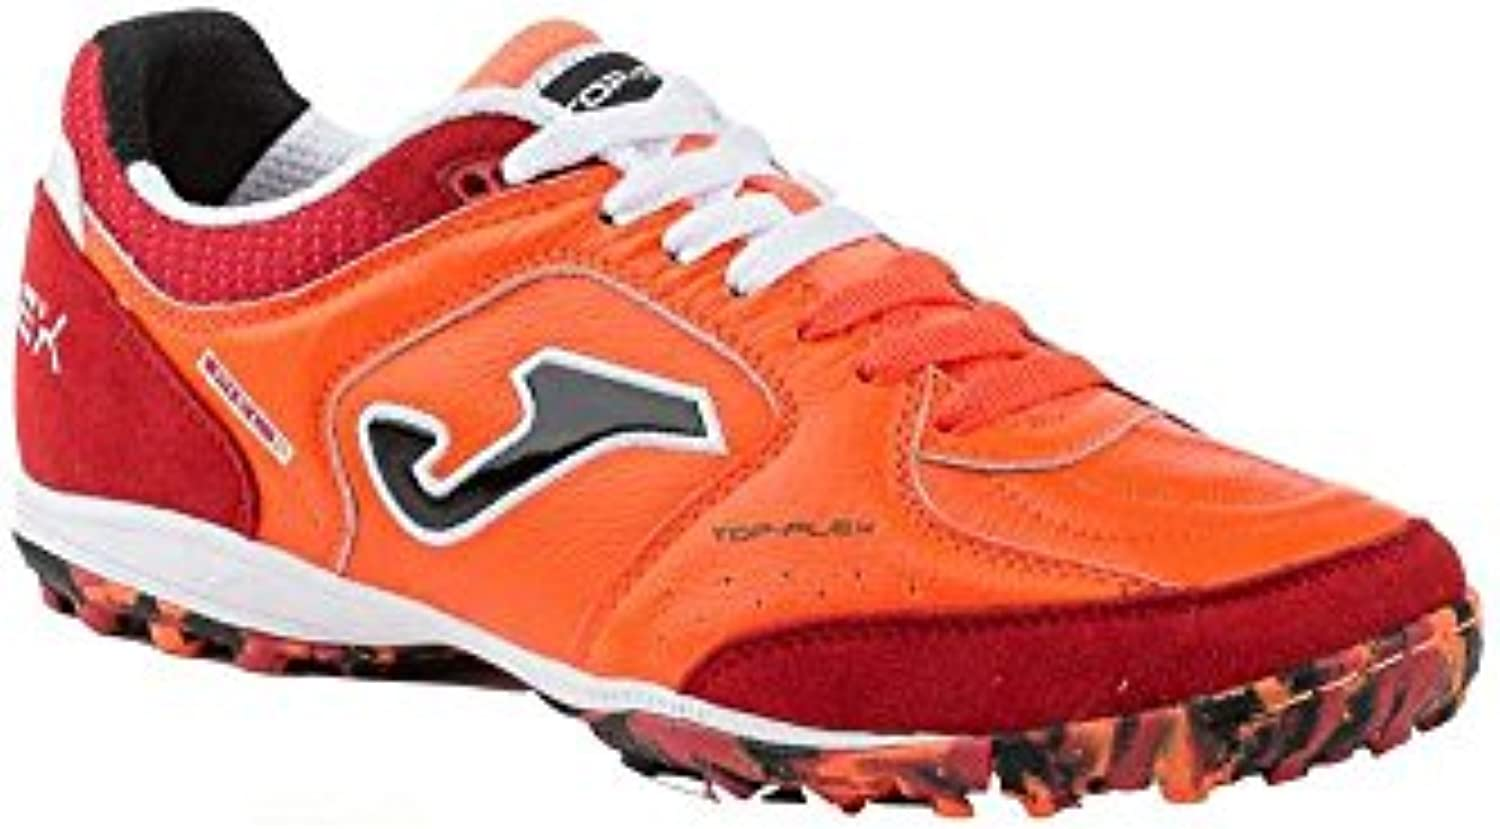 Joma - JOMA TOP FLEX TURF Orange Taille - 44